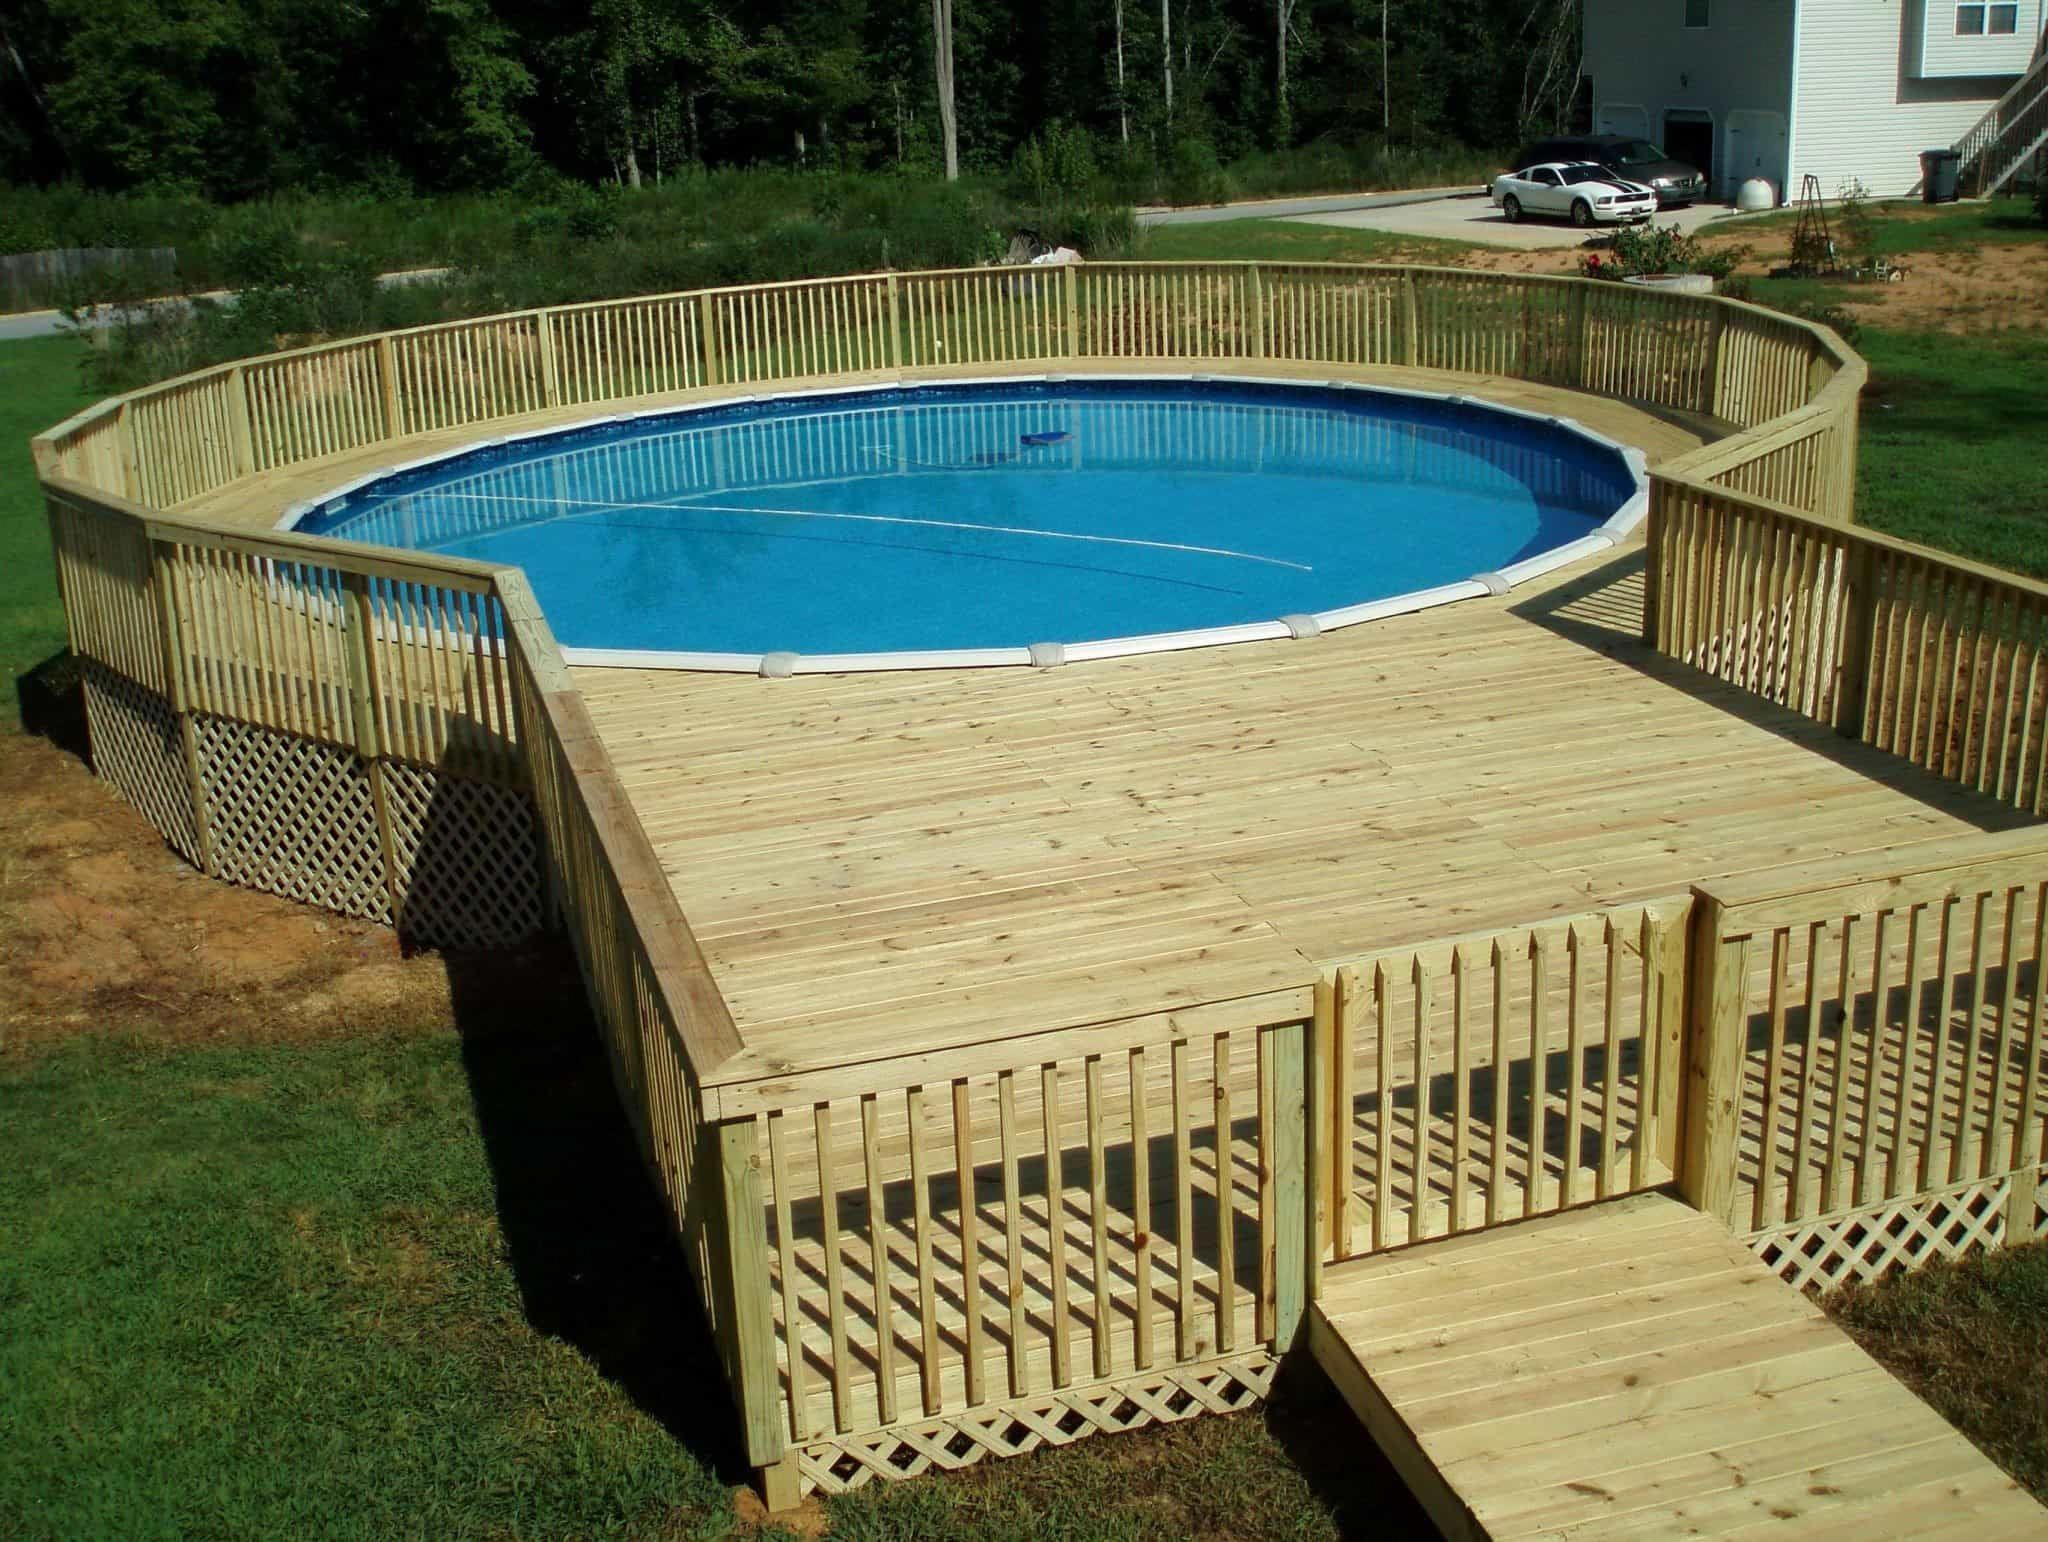 Country Landscape Ideas For Front Yard Pool Deck Plans Wood Pool Deck Backyard Pool